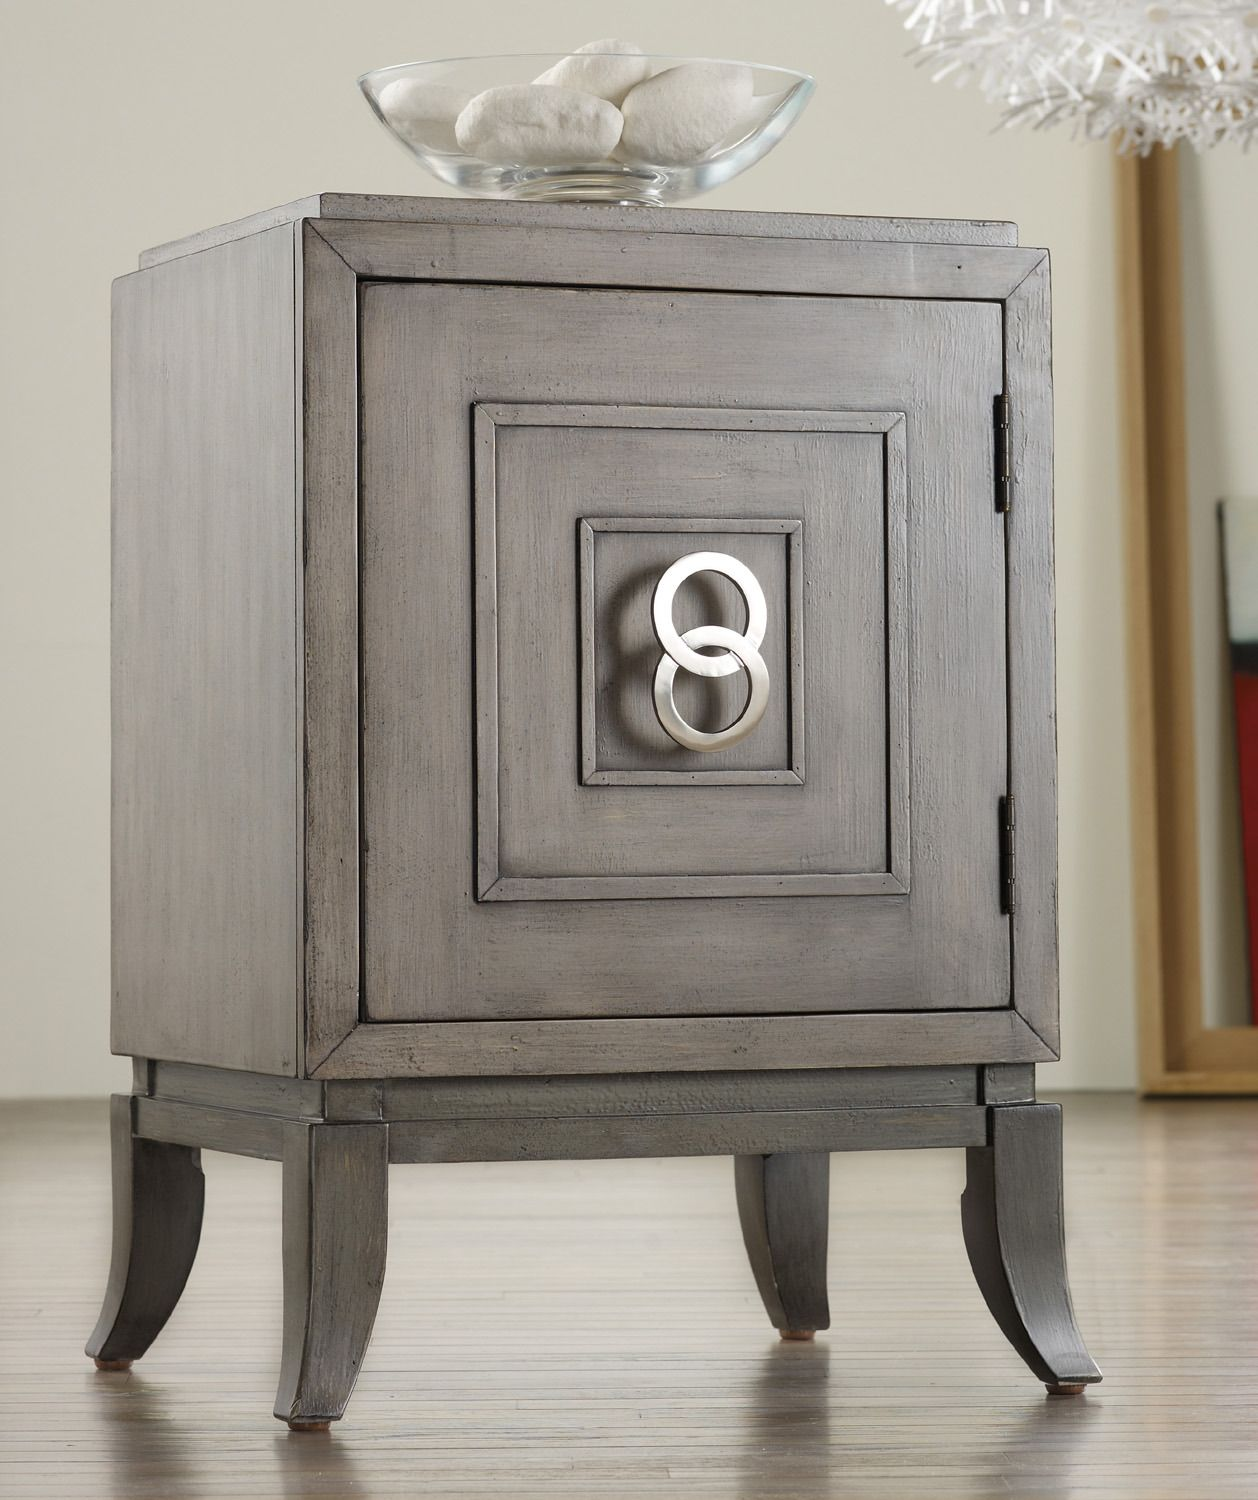 17 Best Images About New Home On Pinterest | Hooker Furniture, Furniture  And Robert Allen